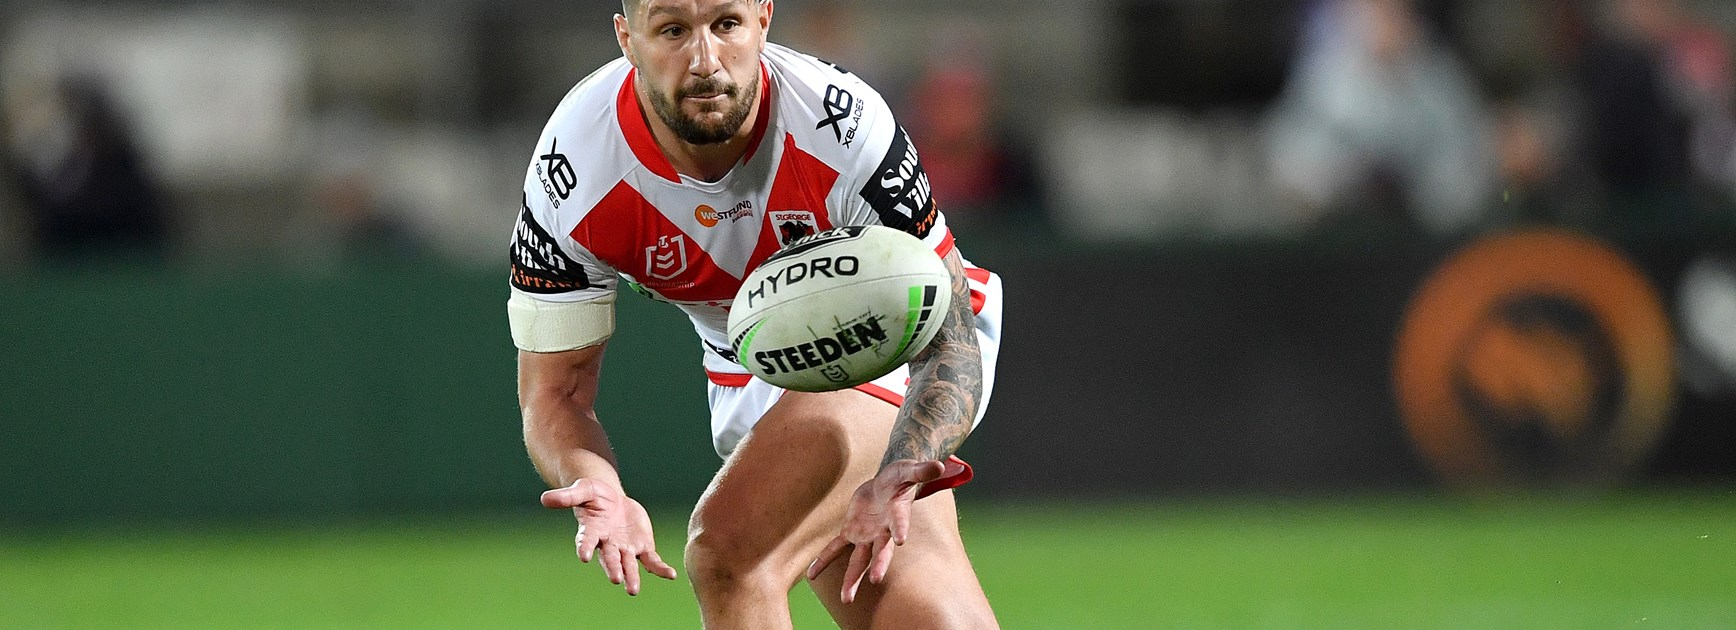 TripADeal NRL team announcement: Round 24 v Tigers